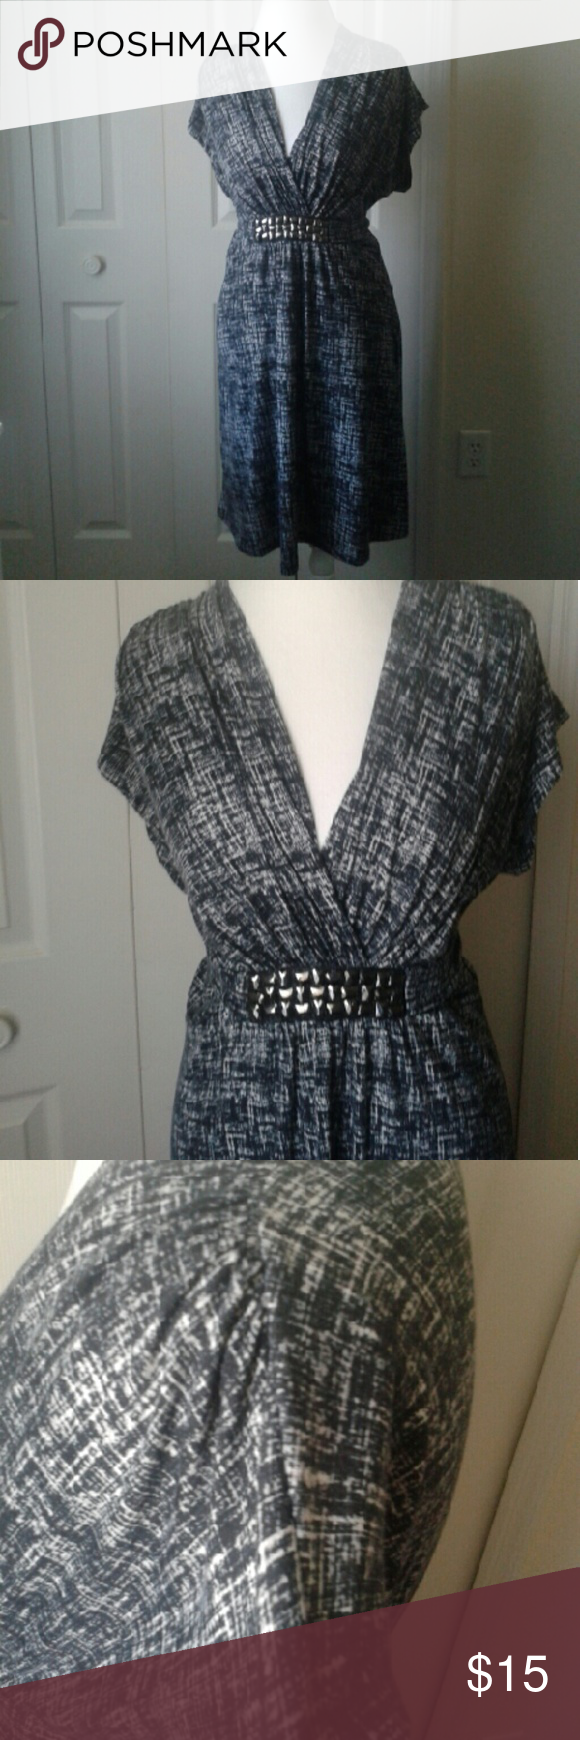 """**SALE**Charcoal gray and white dress Dark charcoal and white design. Sash ties back at the waist. Falls above the knee.  Ruched sleeves and v-neckline (flatters chest and upper arms) Length:37"""" Dresses"""